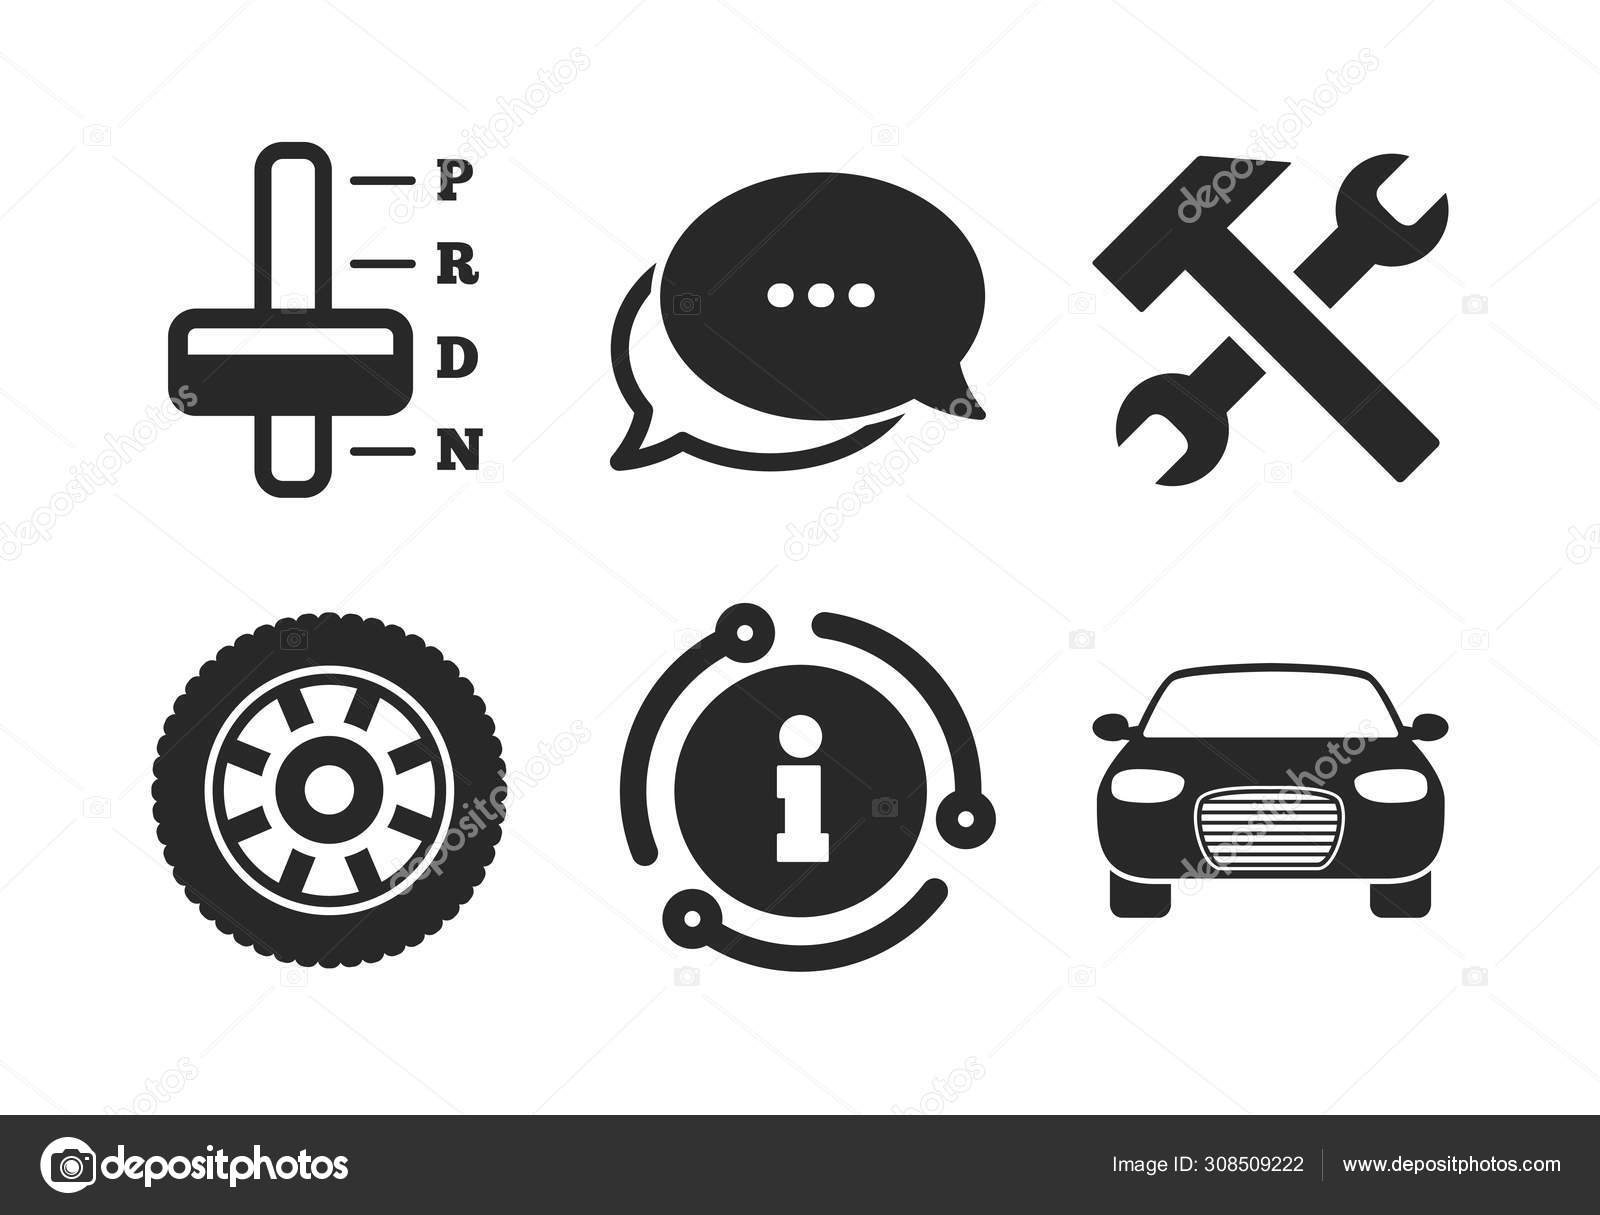 Car Tachometer Automatic Transmission Symbols Chat Info Sign Transport Icons Stock Vector C Blankstock 308509222